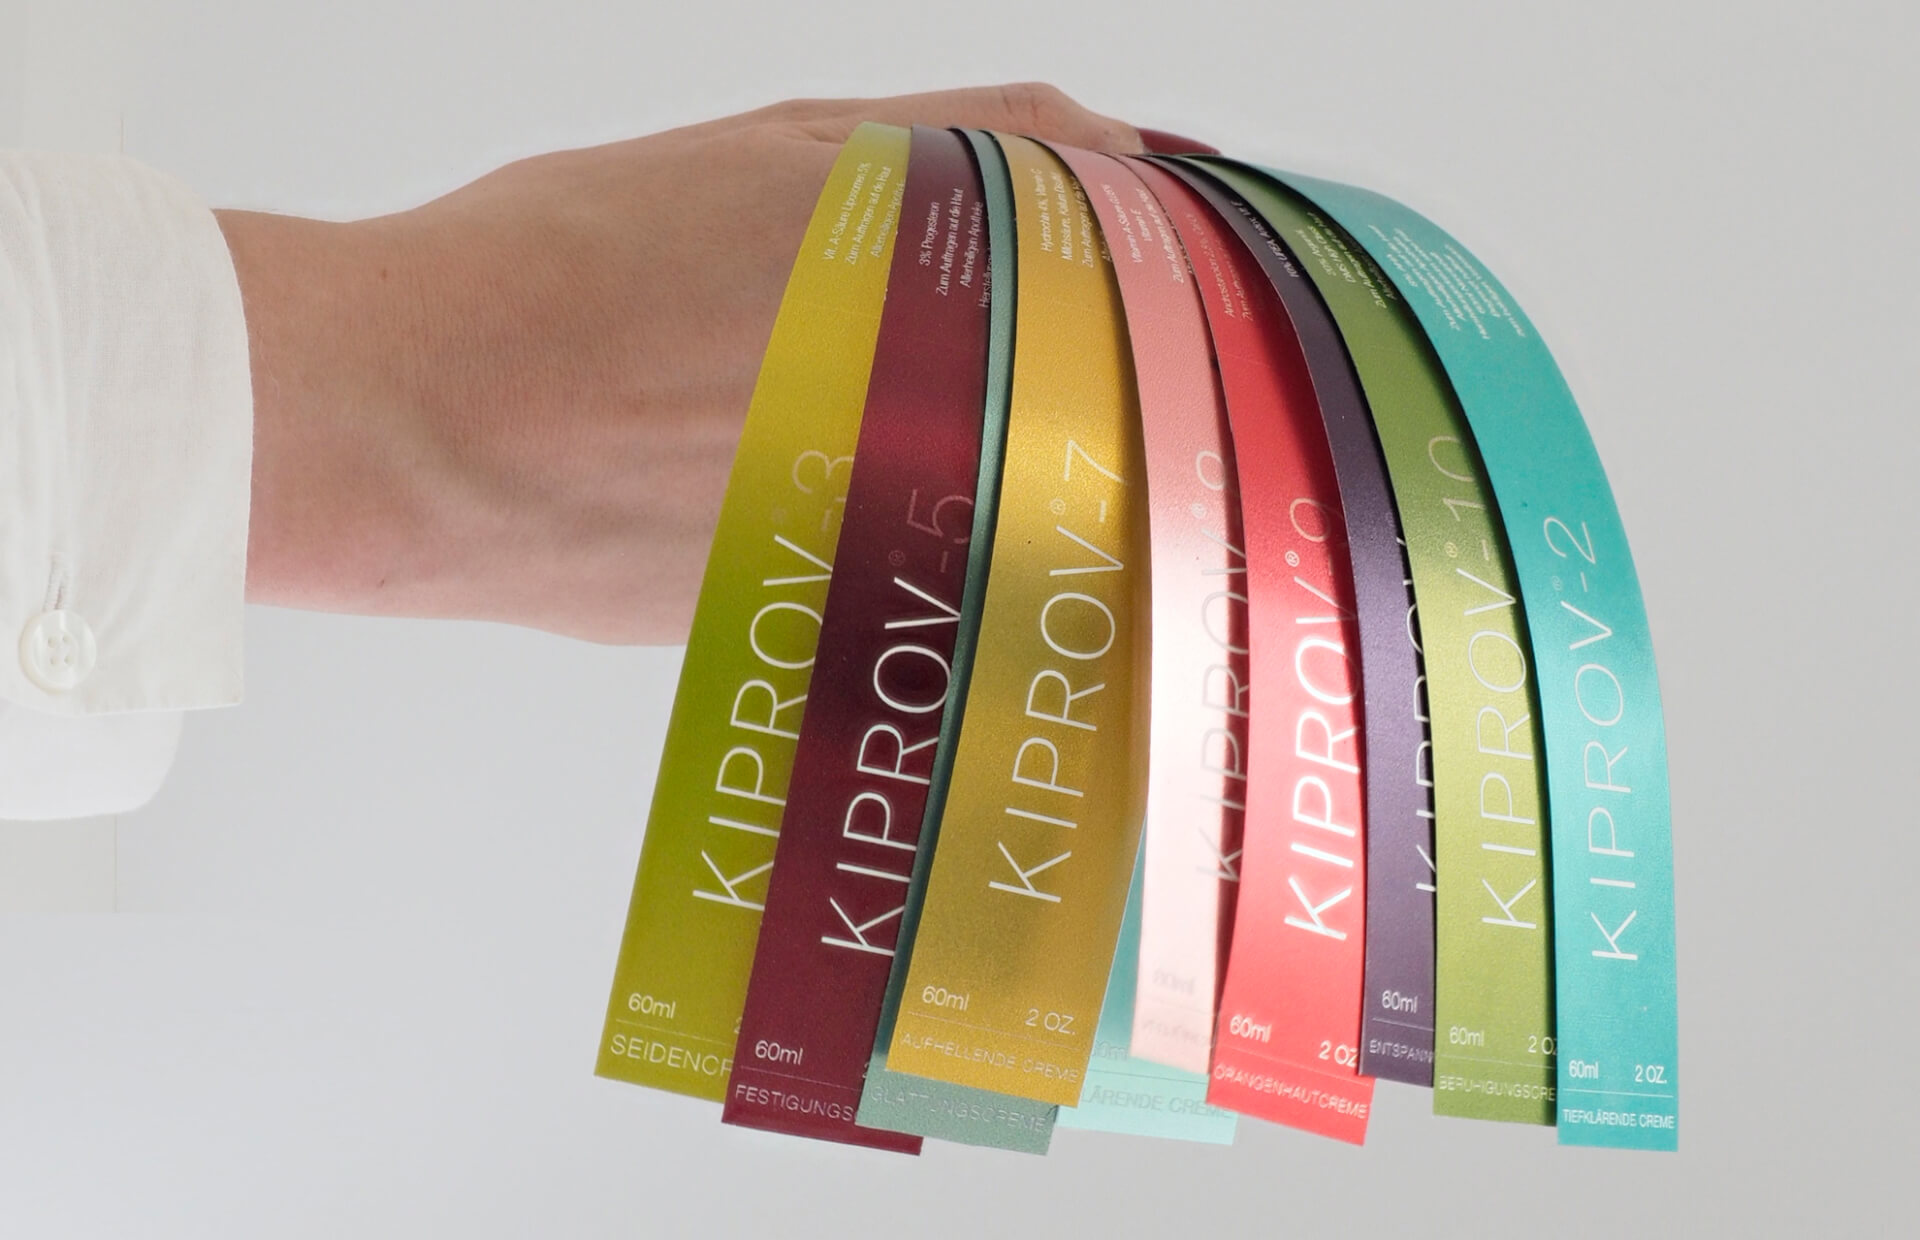 modern packaging for kiprov cosmetics, labels